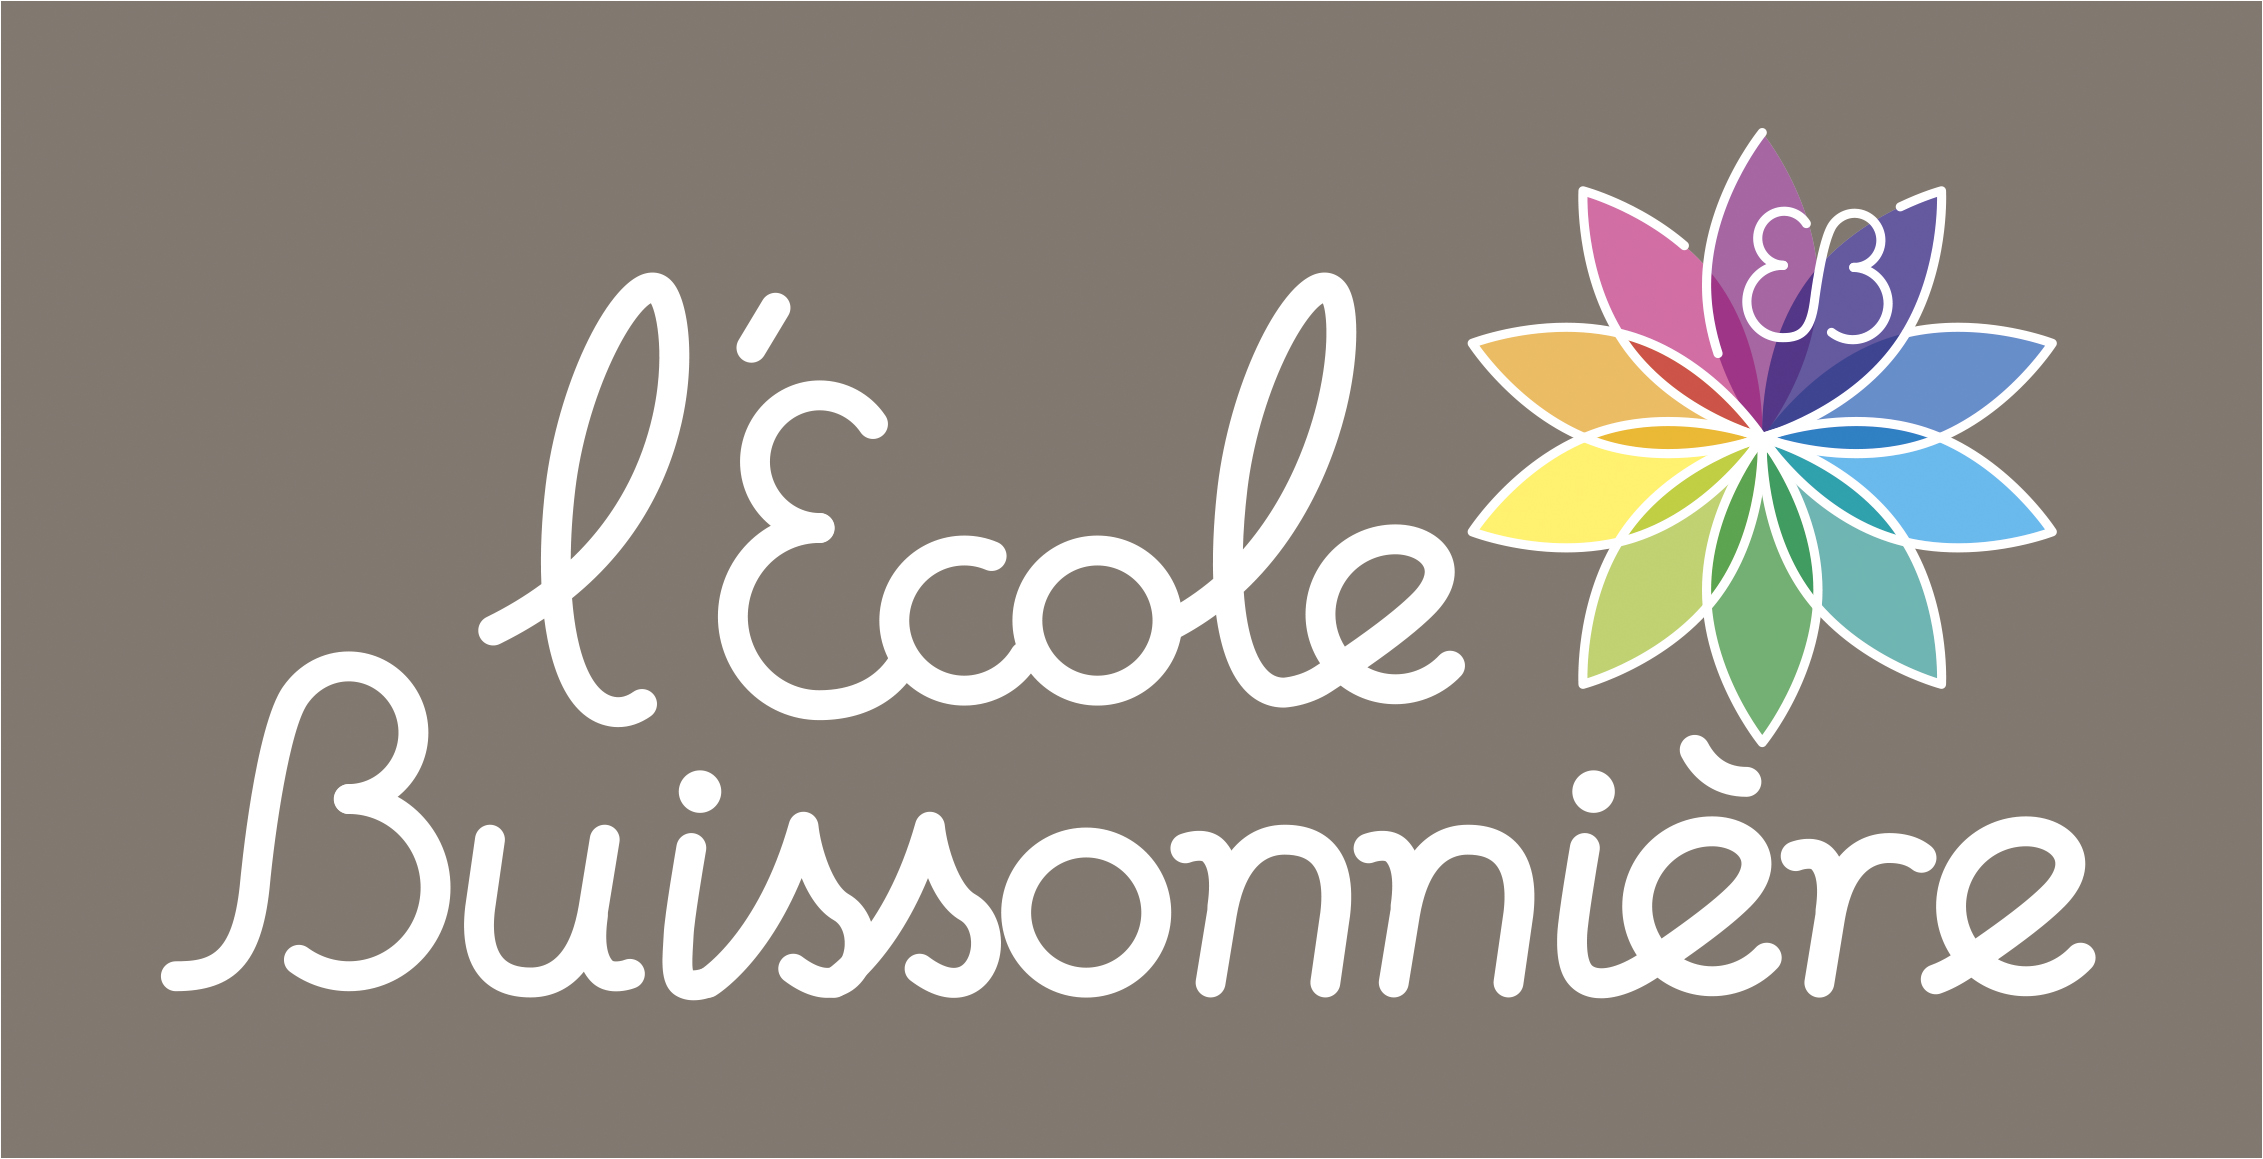 logo-l-ecole-buissonnie-re-hd-258313